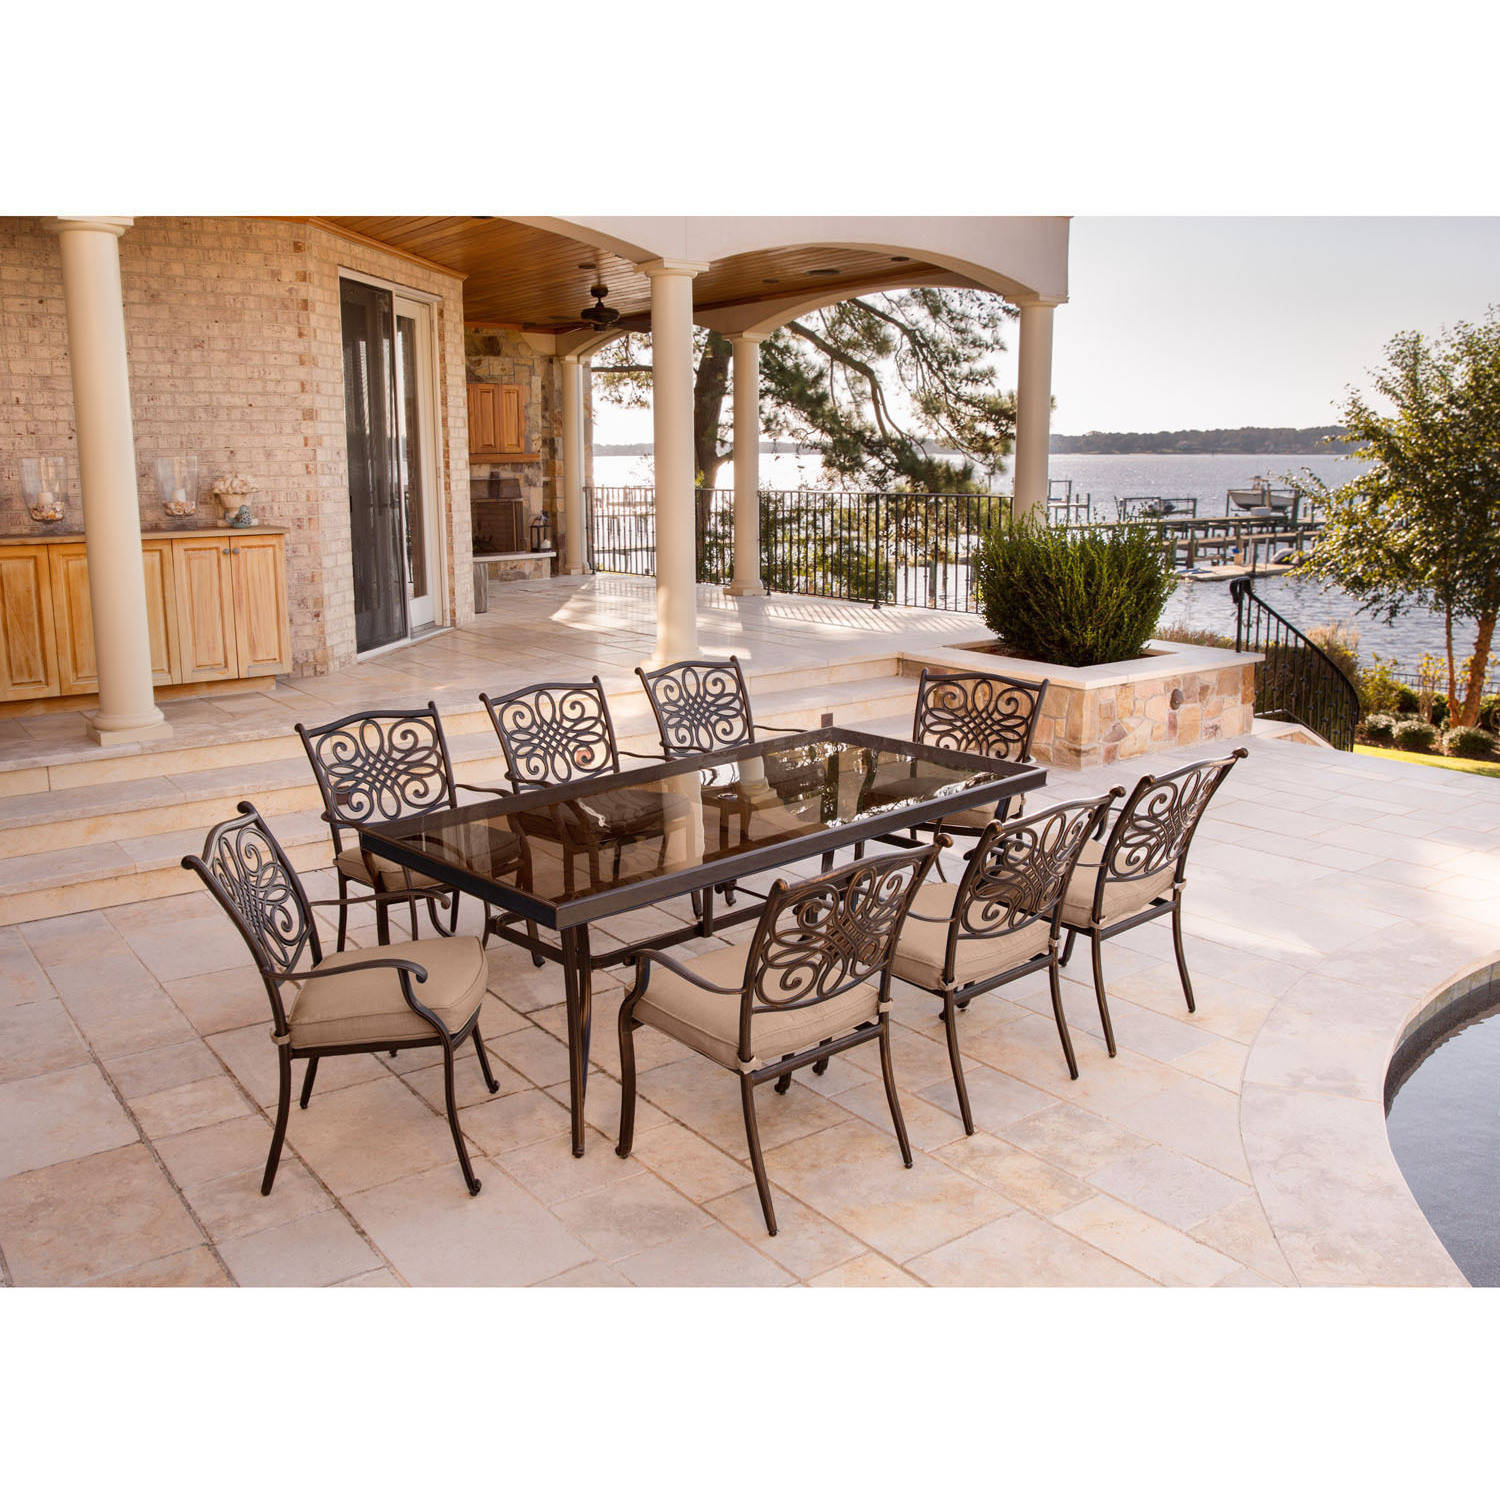 """Hanover Outdoor Traditions 9-Piece Dining Set with 42"""" x 84"""" Glass-Top Table and 8 Stationary Chairs"""